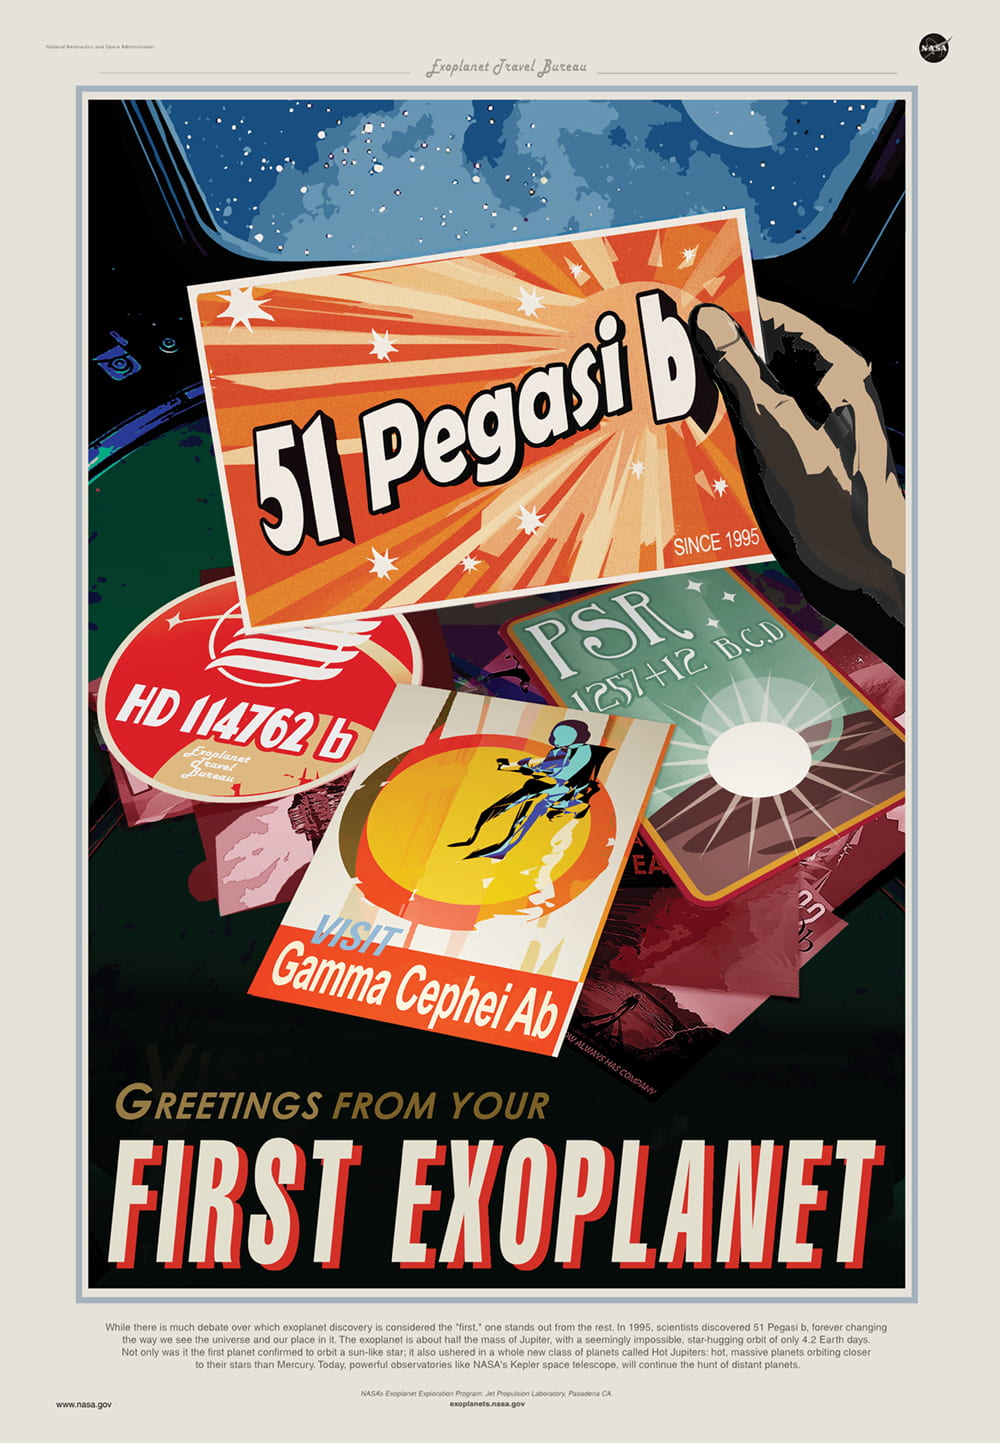 A travel poster for the first exoplanet featuring fake postcards of other planets and a hand holding up one which reads 51 Pegasi b. In the background is a stylised view out a window looking into space. On the bottom it reads Greetings from you first exoplanet